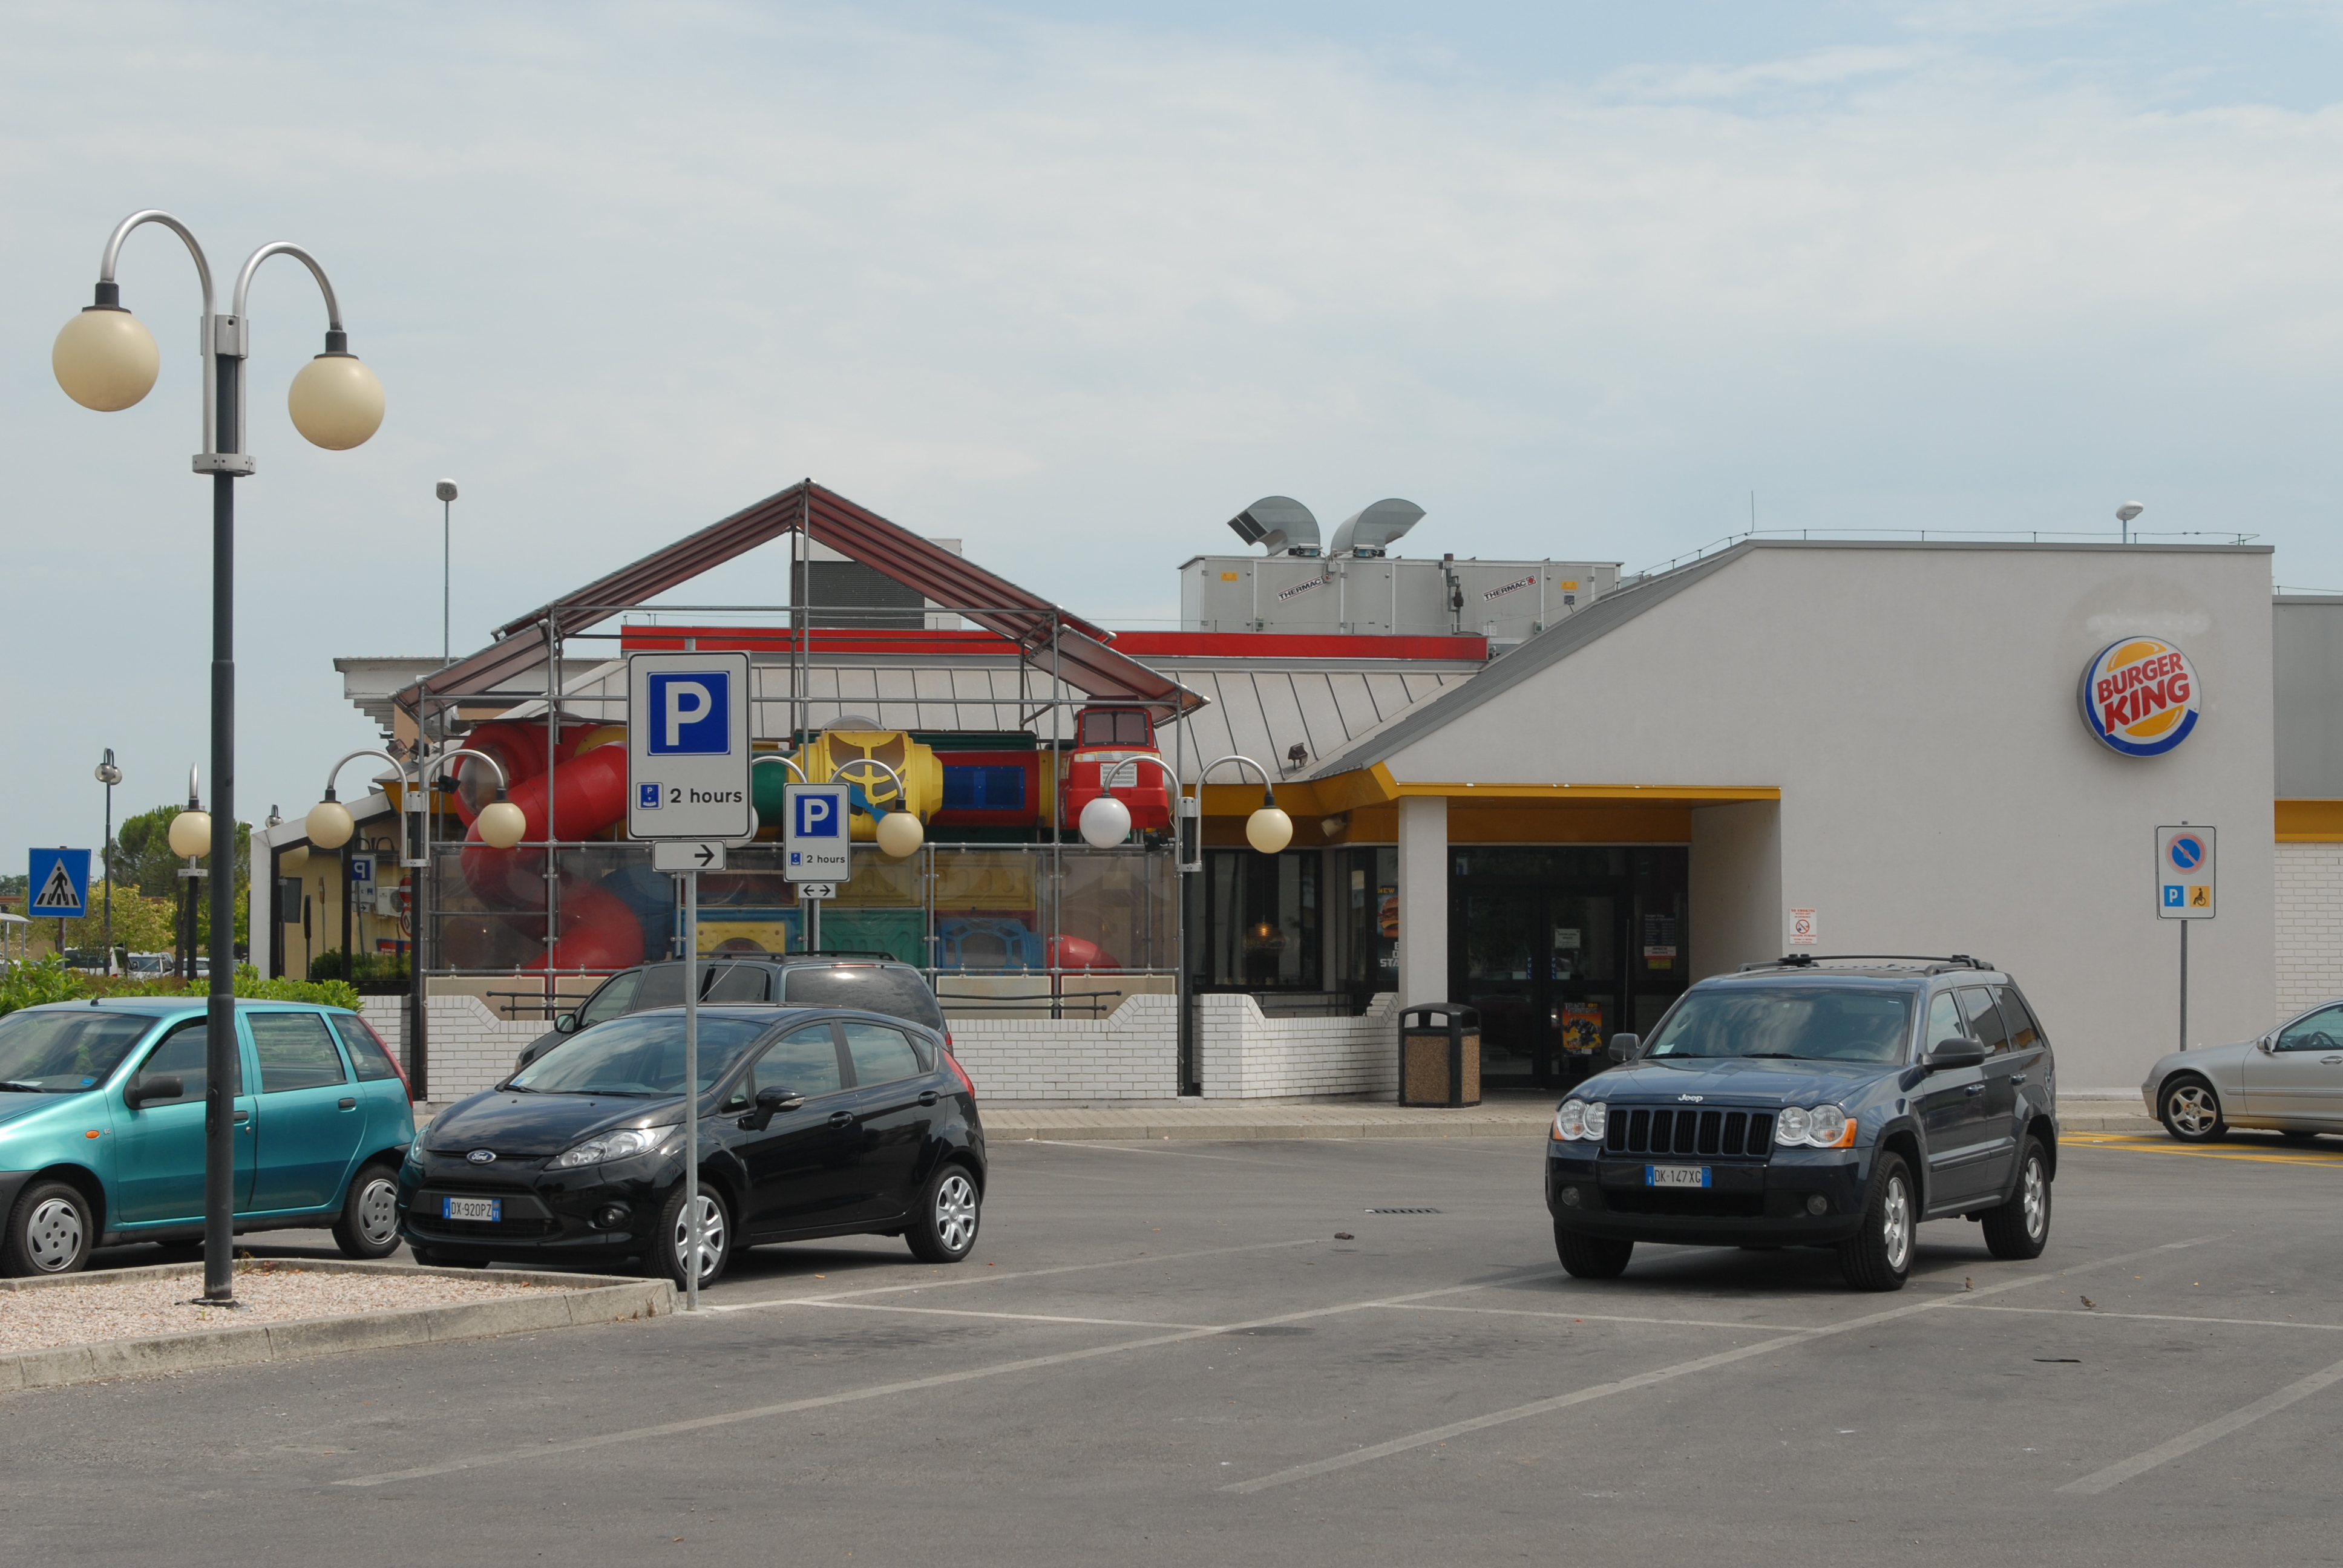 Burger_King_-_Caserma,_Ederle,_United_States_Army_Garrison_Vicenza_-_US_Army_Africa_Welcome_Guide_-_090808.jpg (3872×2592)